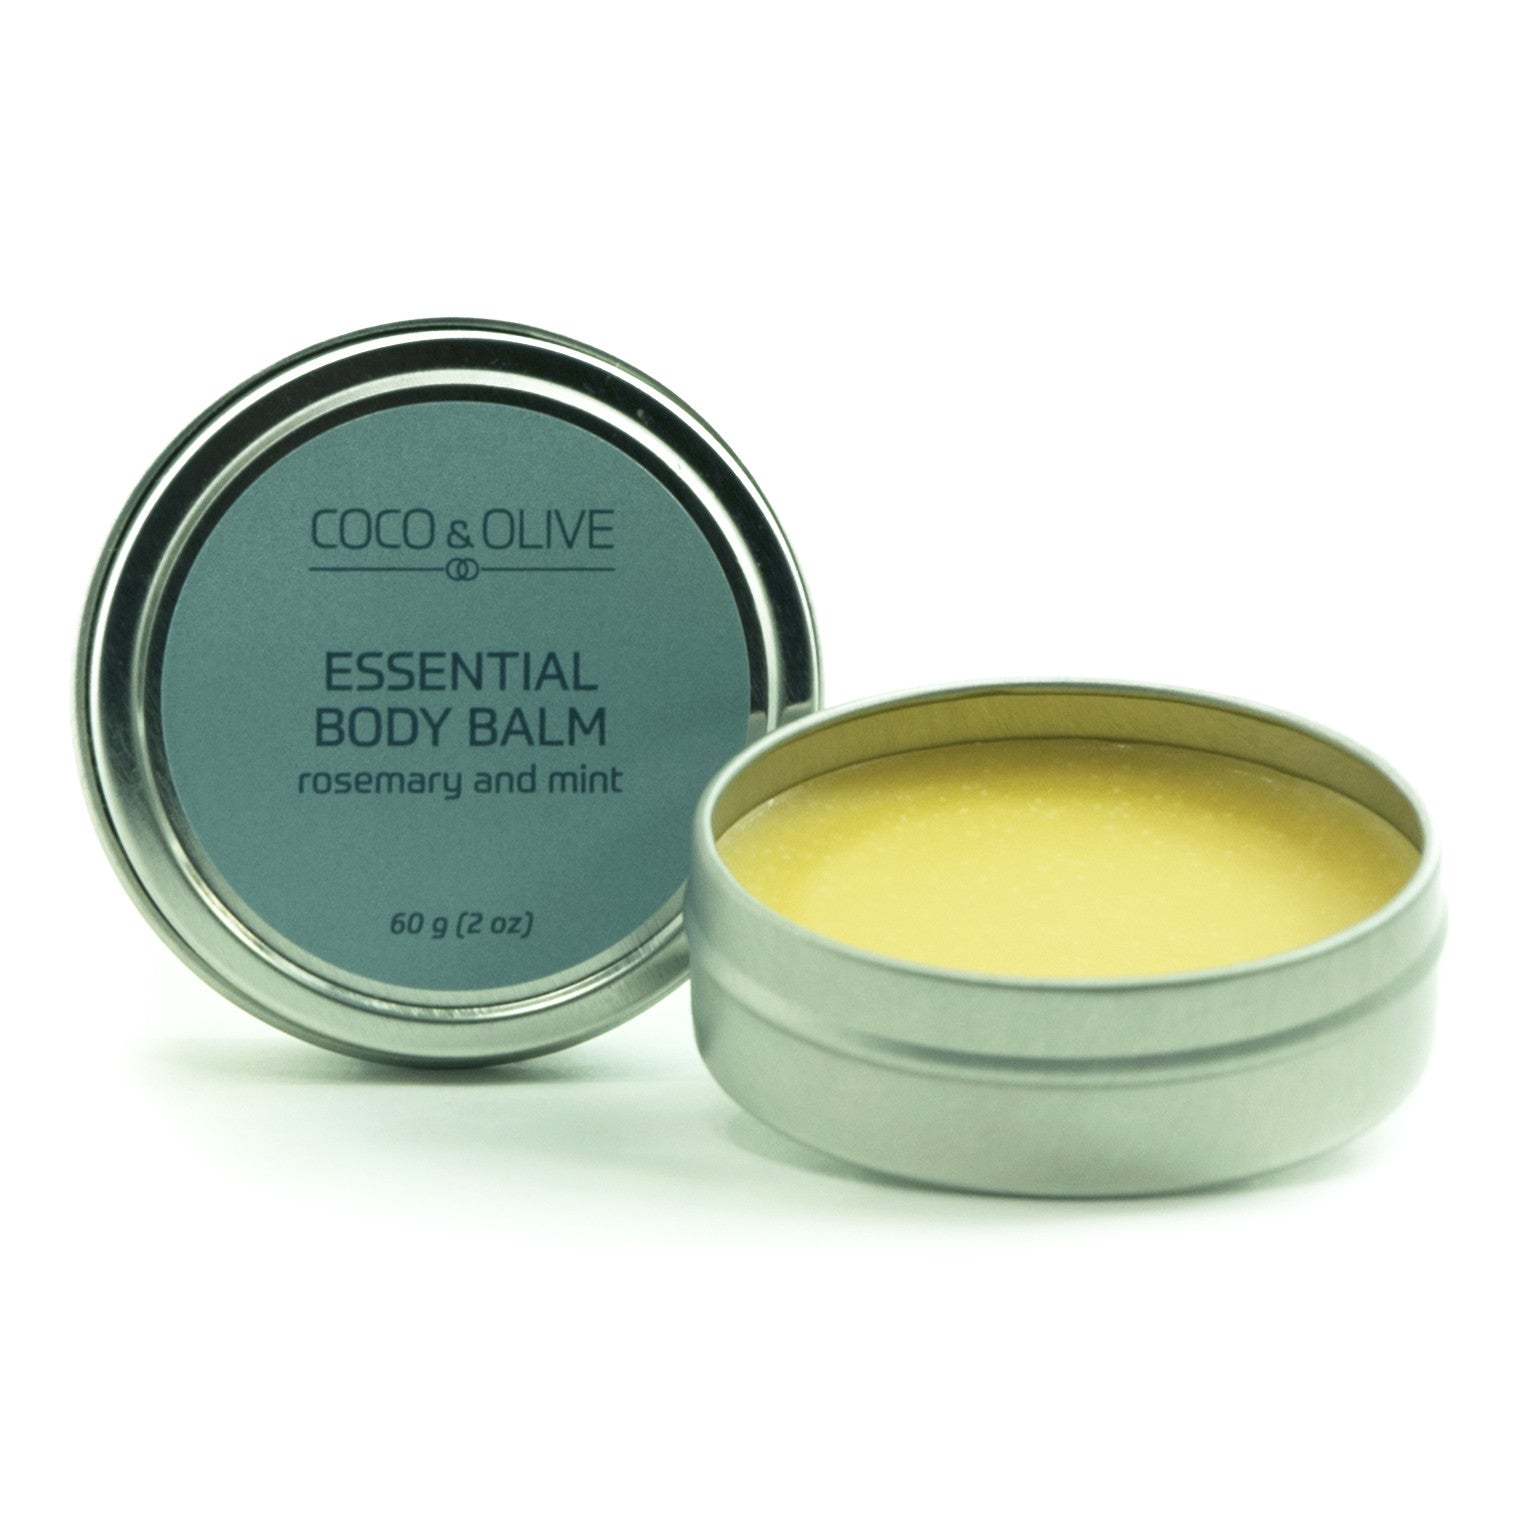 Coco & Olive Essential Body Balm a mixture of mango butter and nourishing oils. Provides a protective layer for your skin.